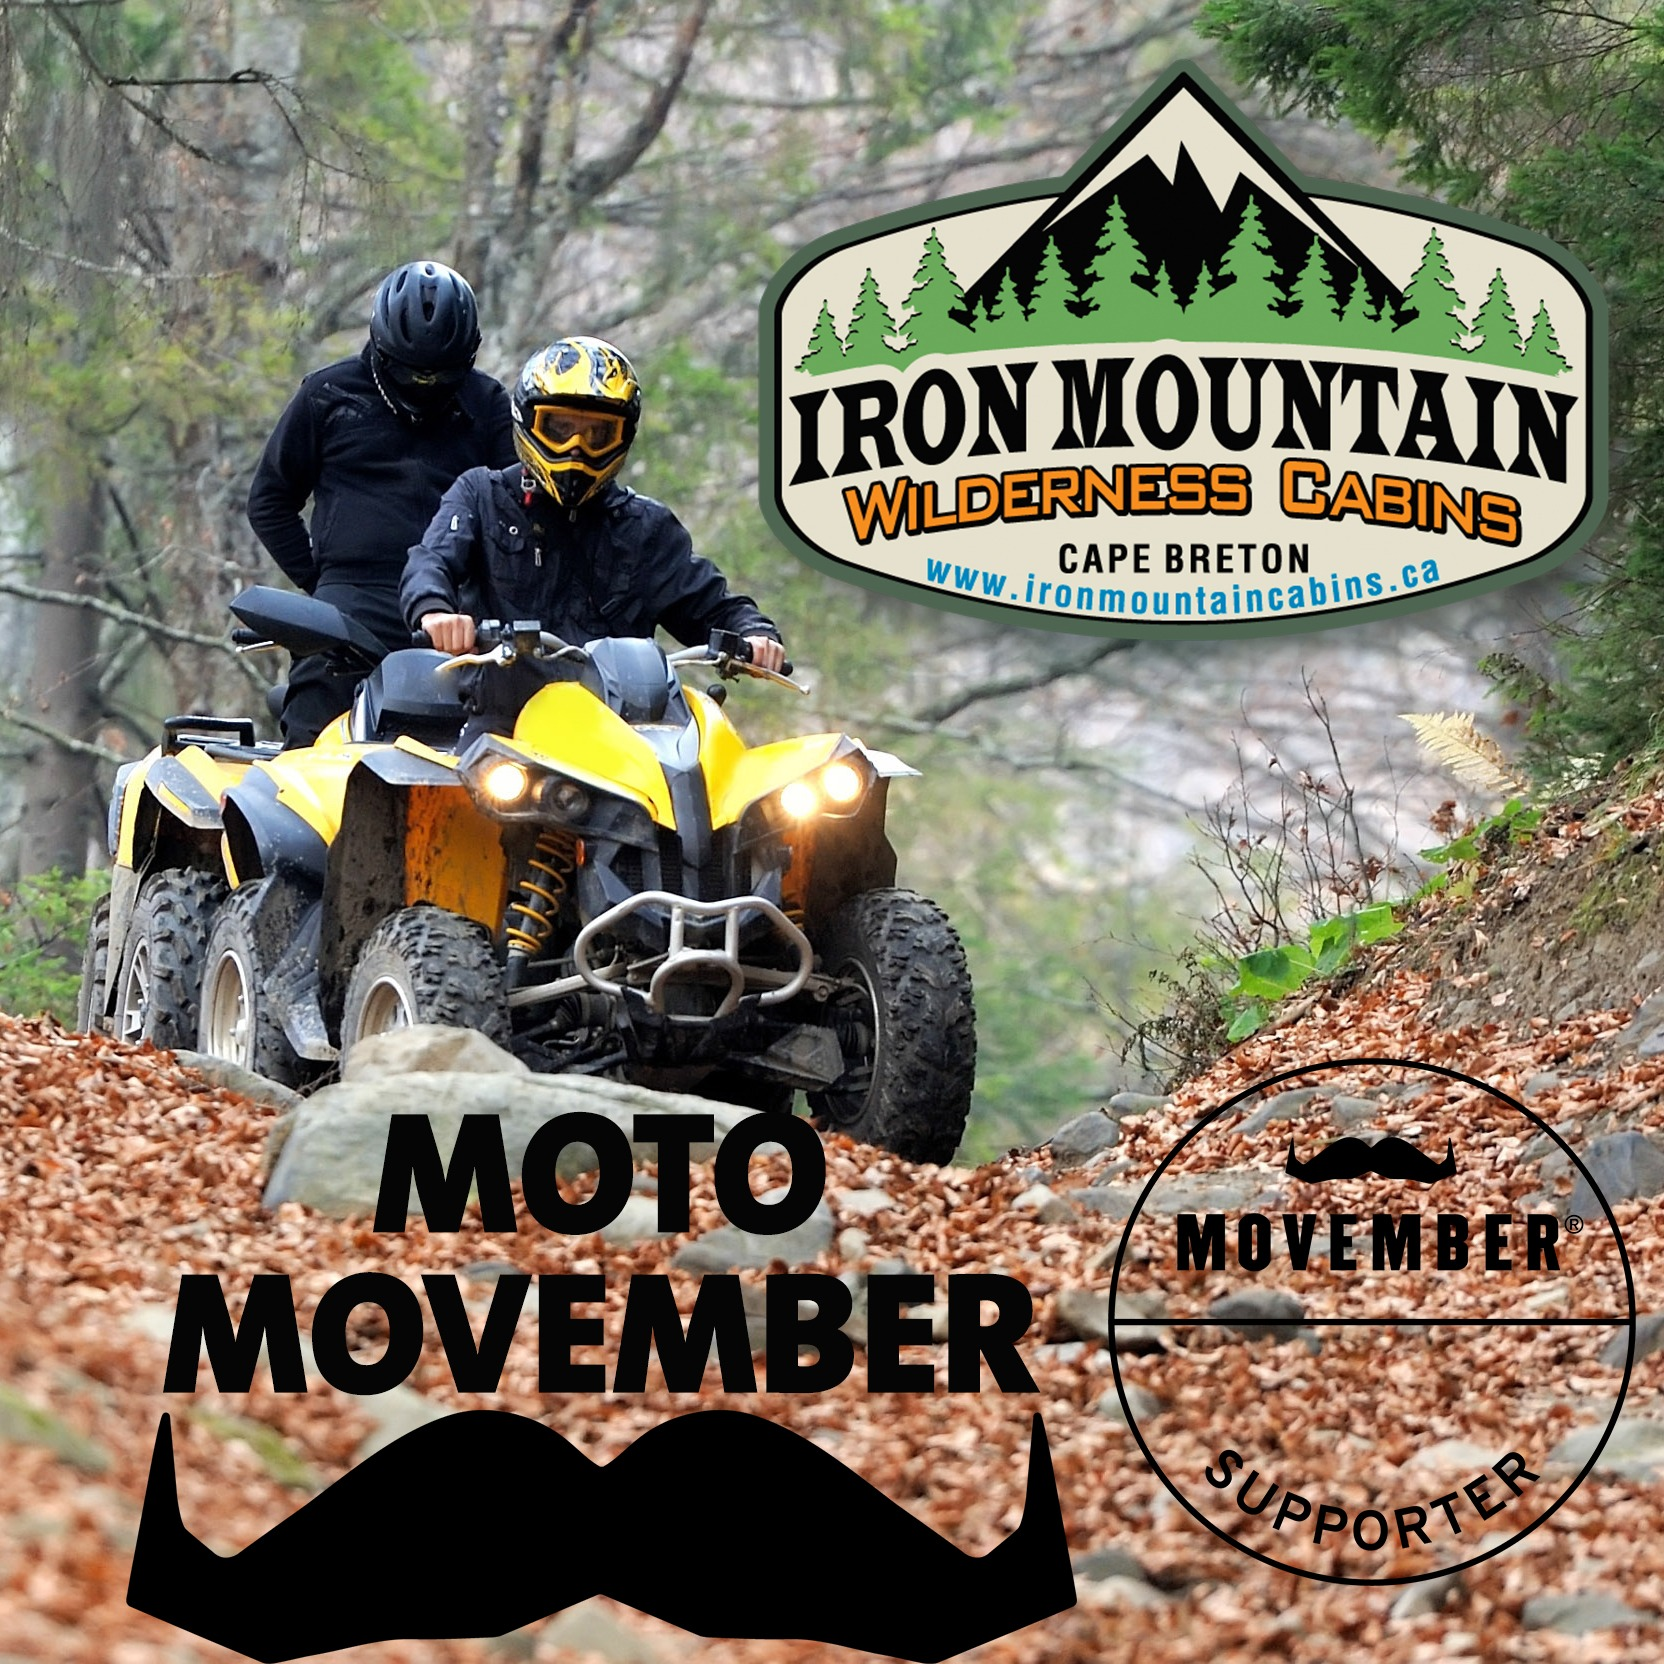 Movember--Square-IronMountainWildernessCabins-9